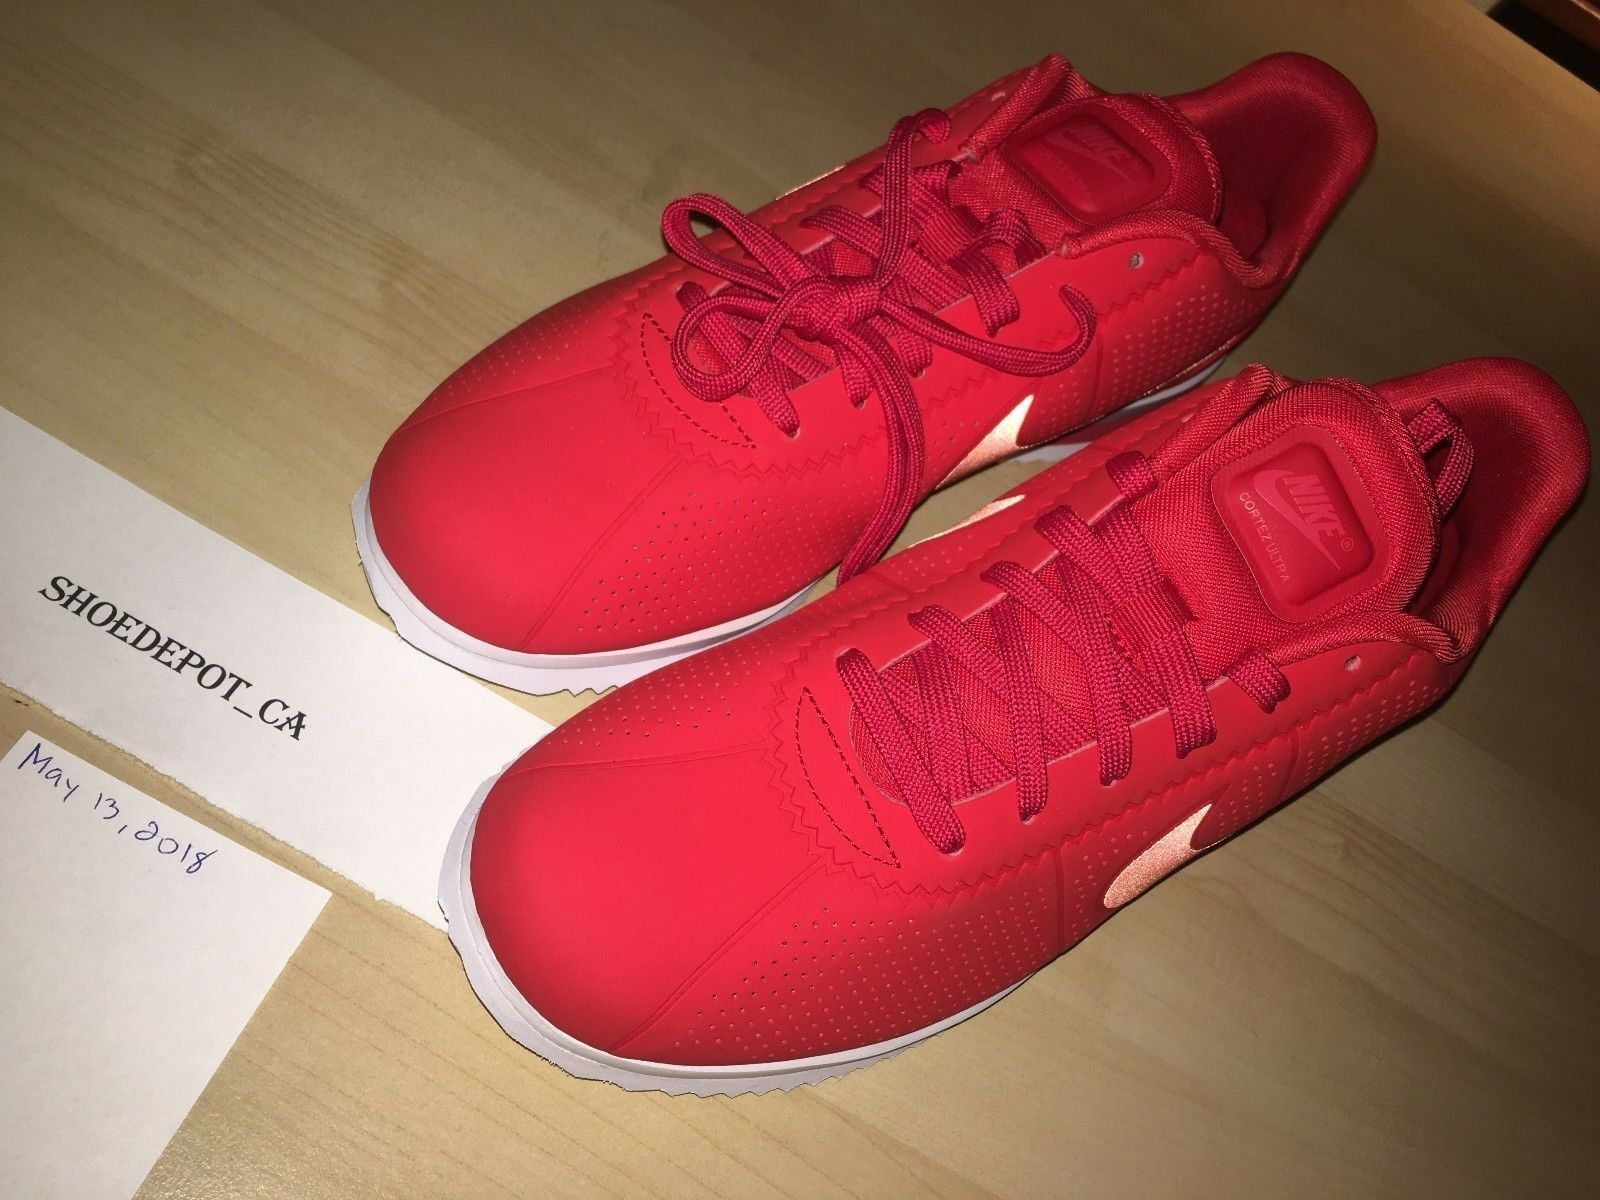 Nike Cortez Ultra Moire 845013-601 Size 10.5 Men's Athletic Running Trainer Red